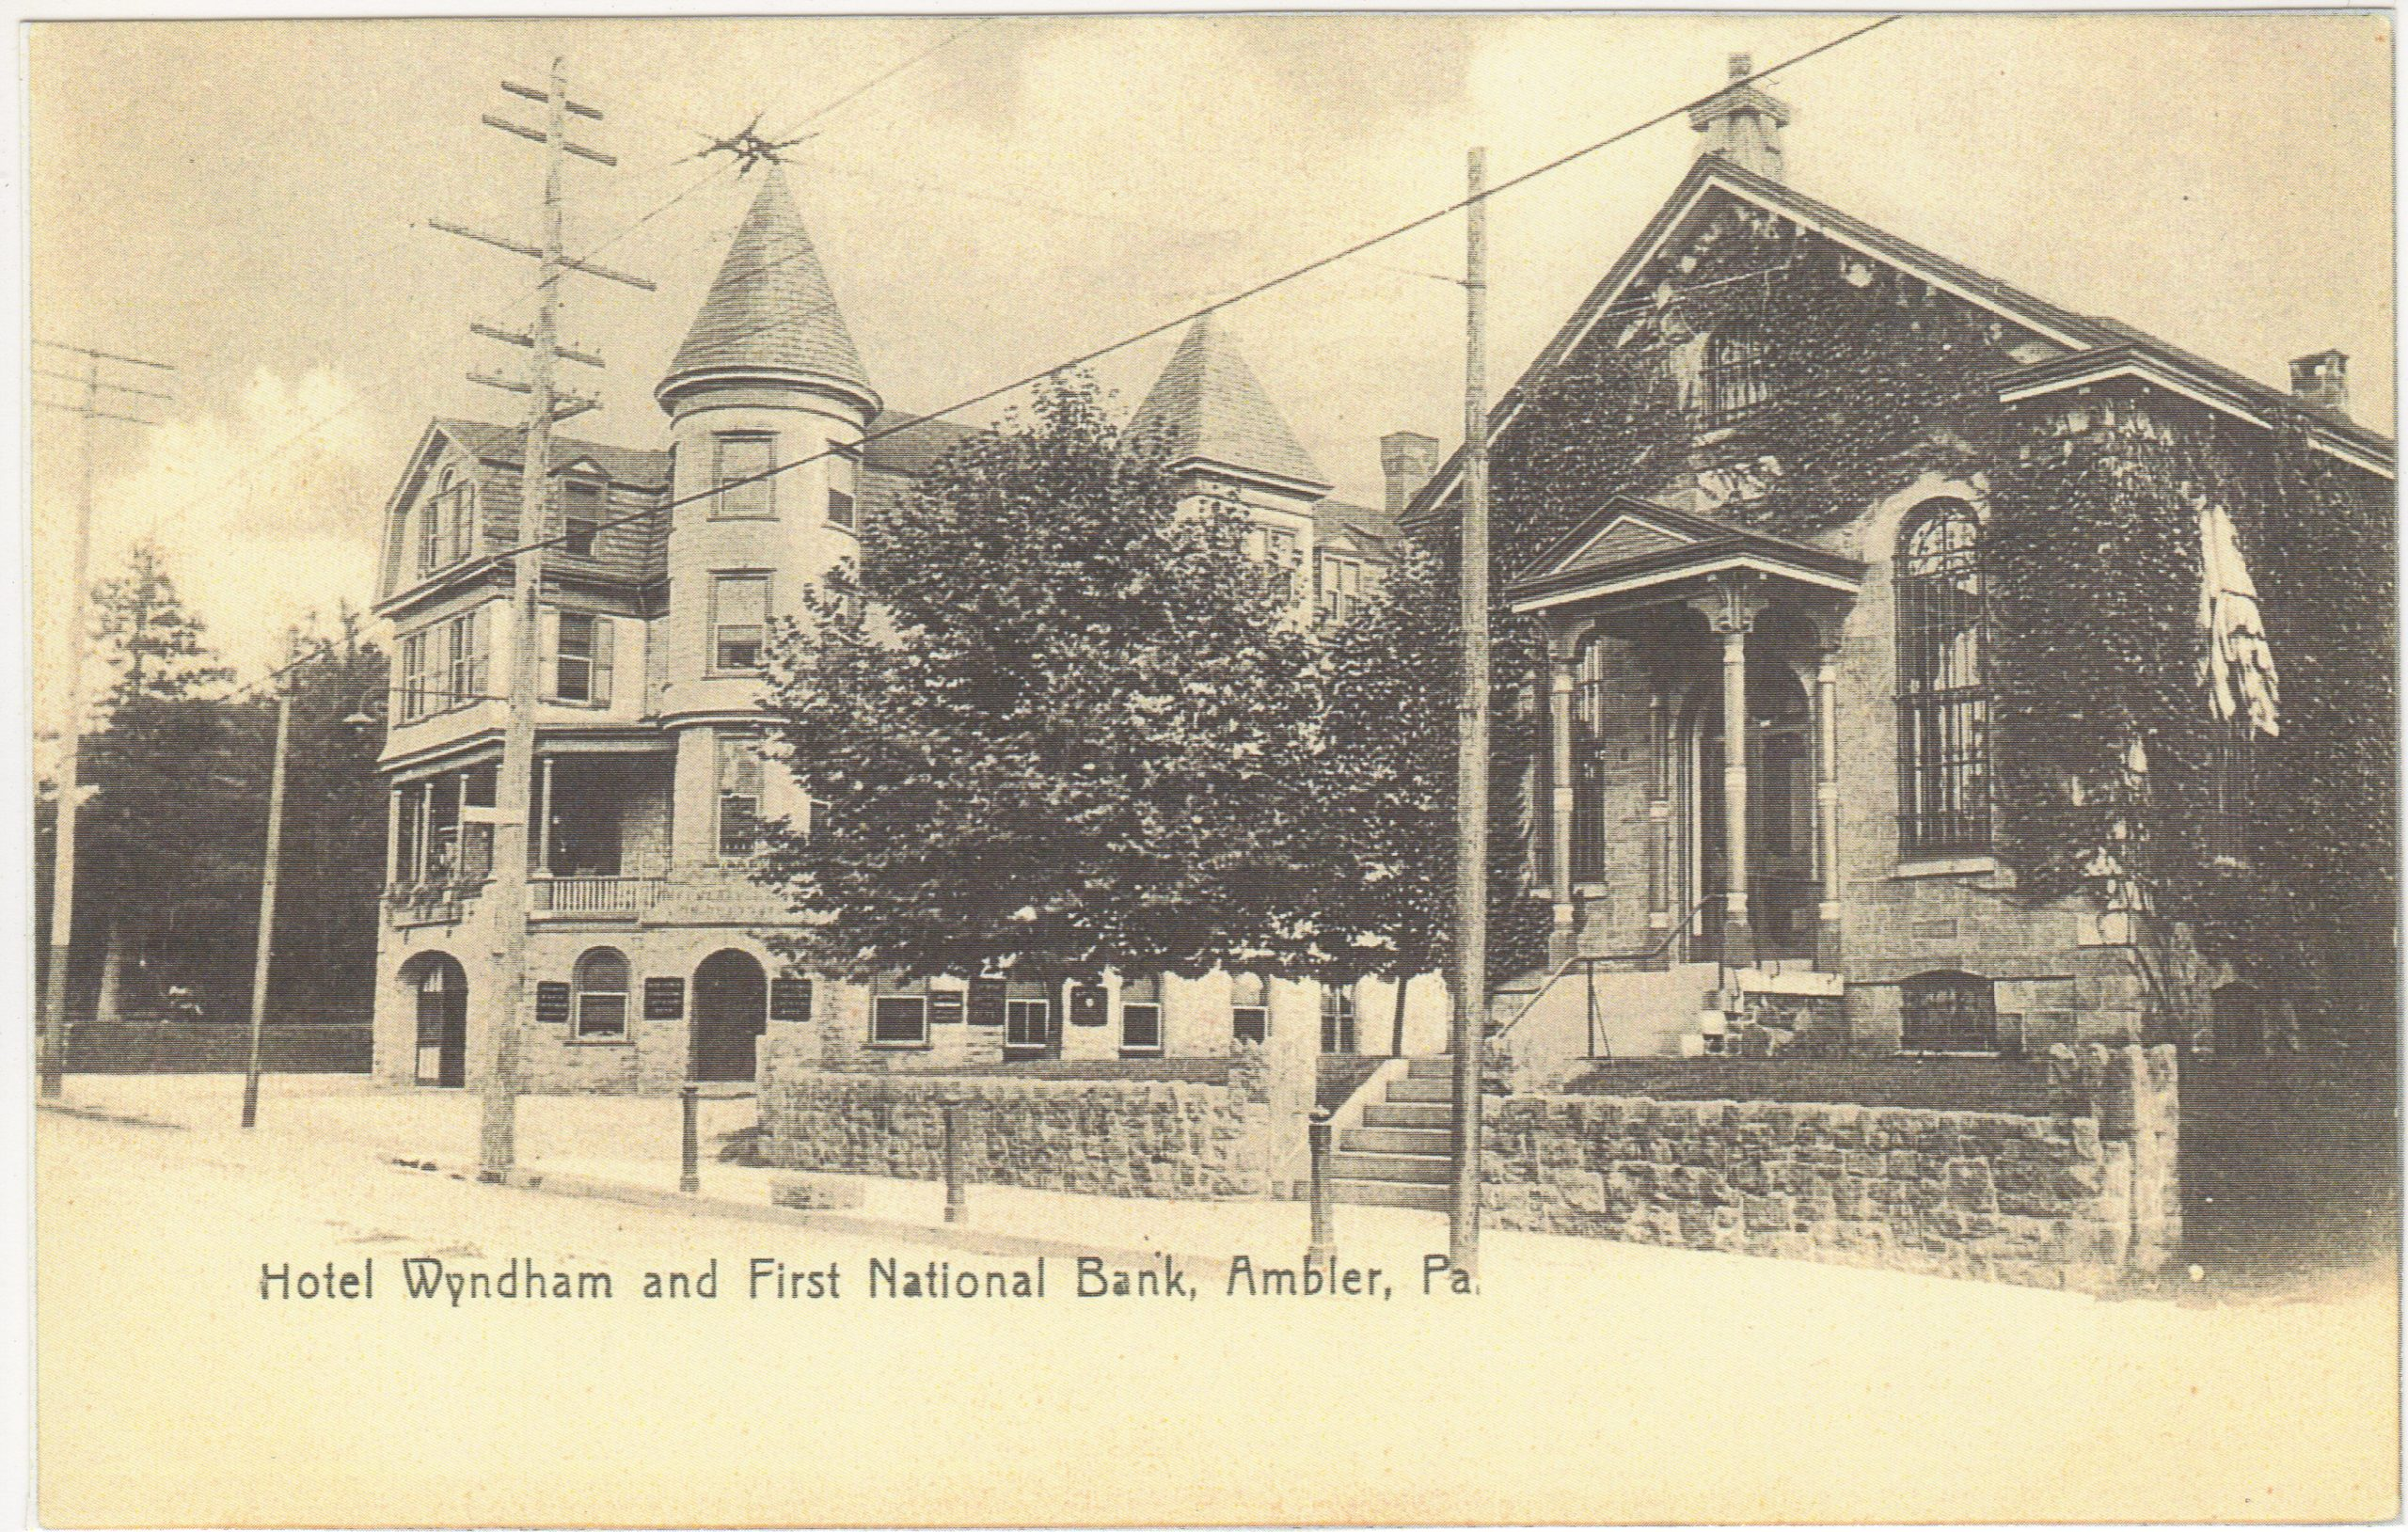 4125.56 Ambler Pa Postcard_Hotel Wyndham & First National Bank_circa 1907